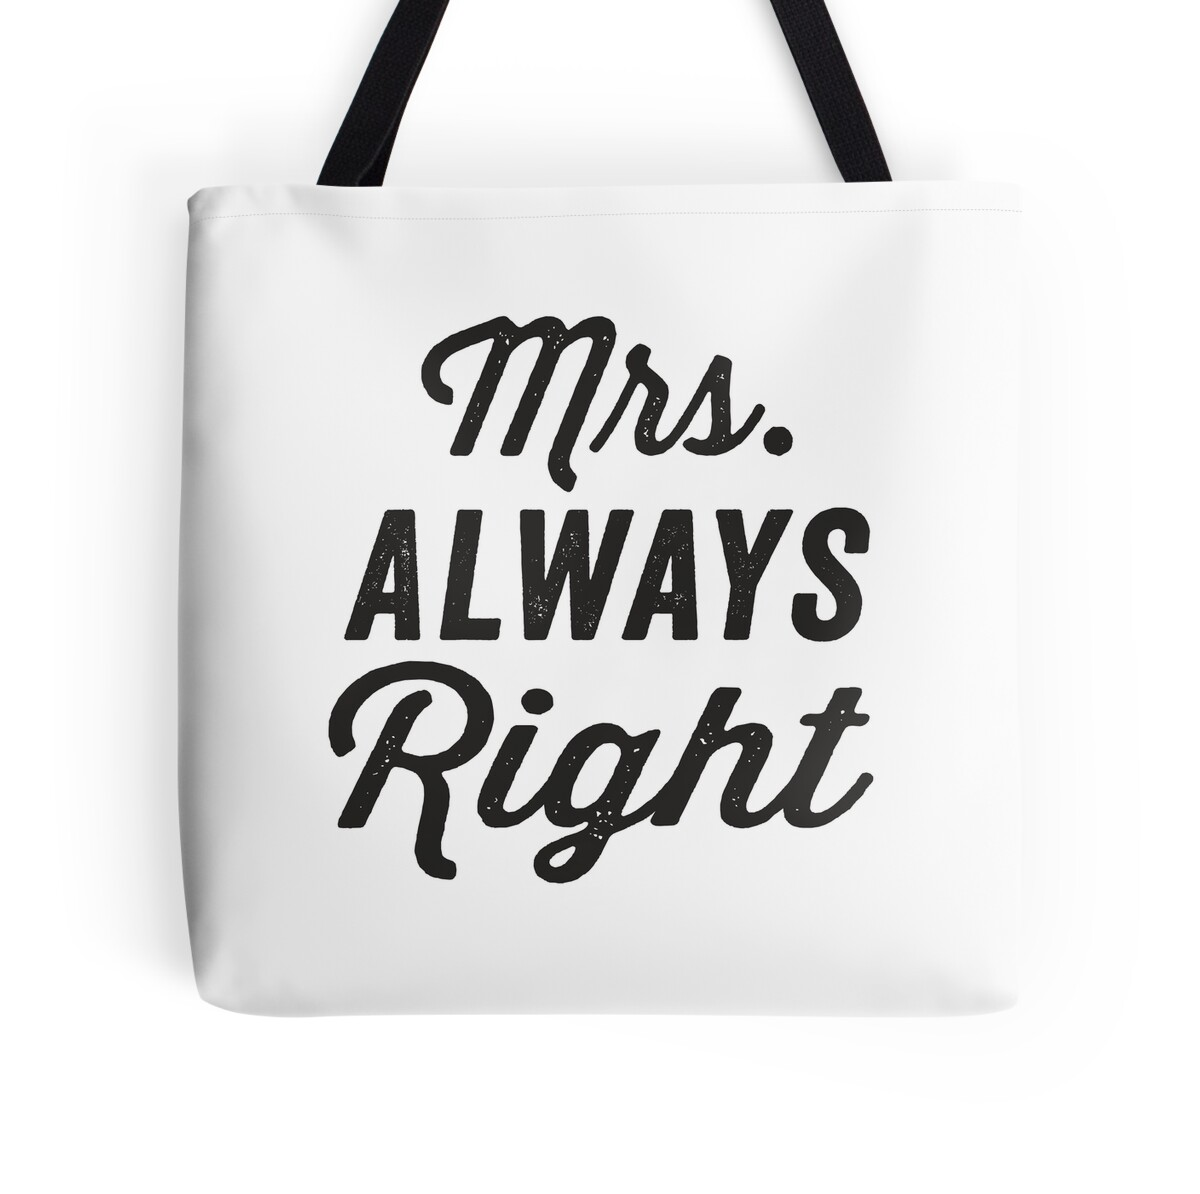 Just Married Quotes Mrsalways Right  Mrnever Right 12 Black Ink  Couples